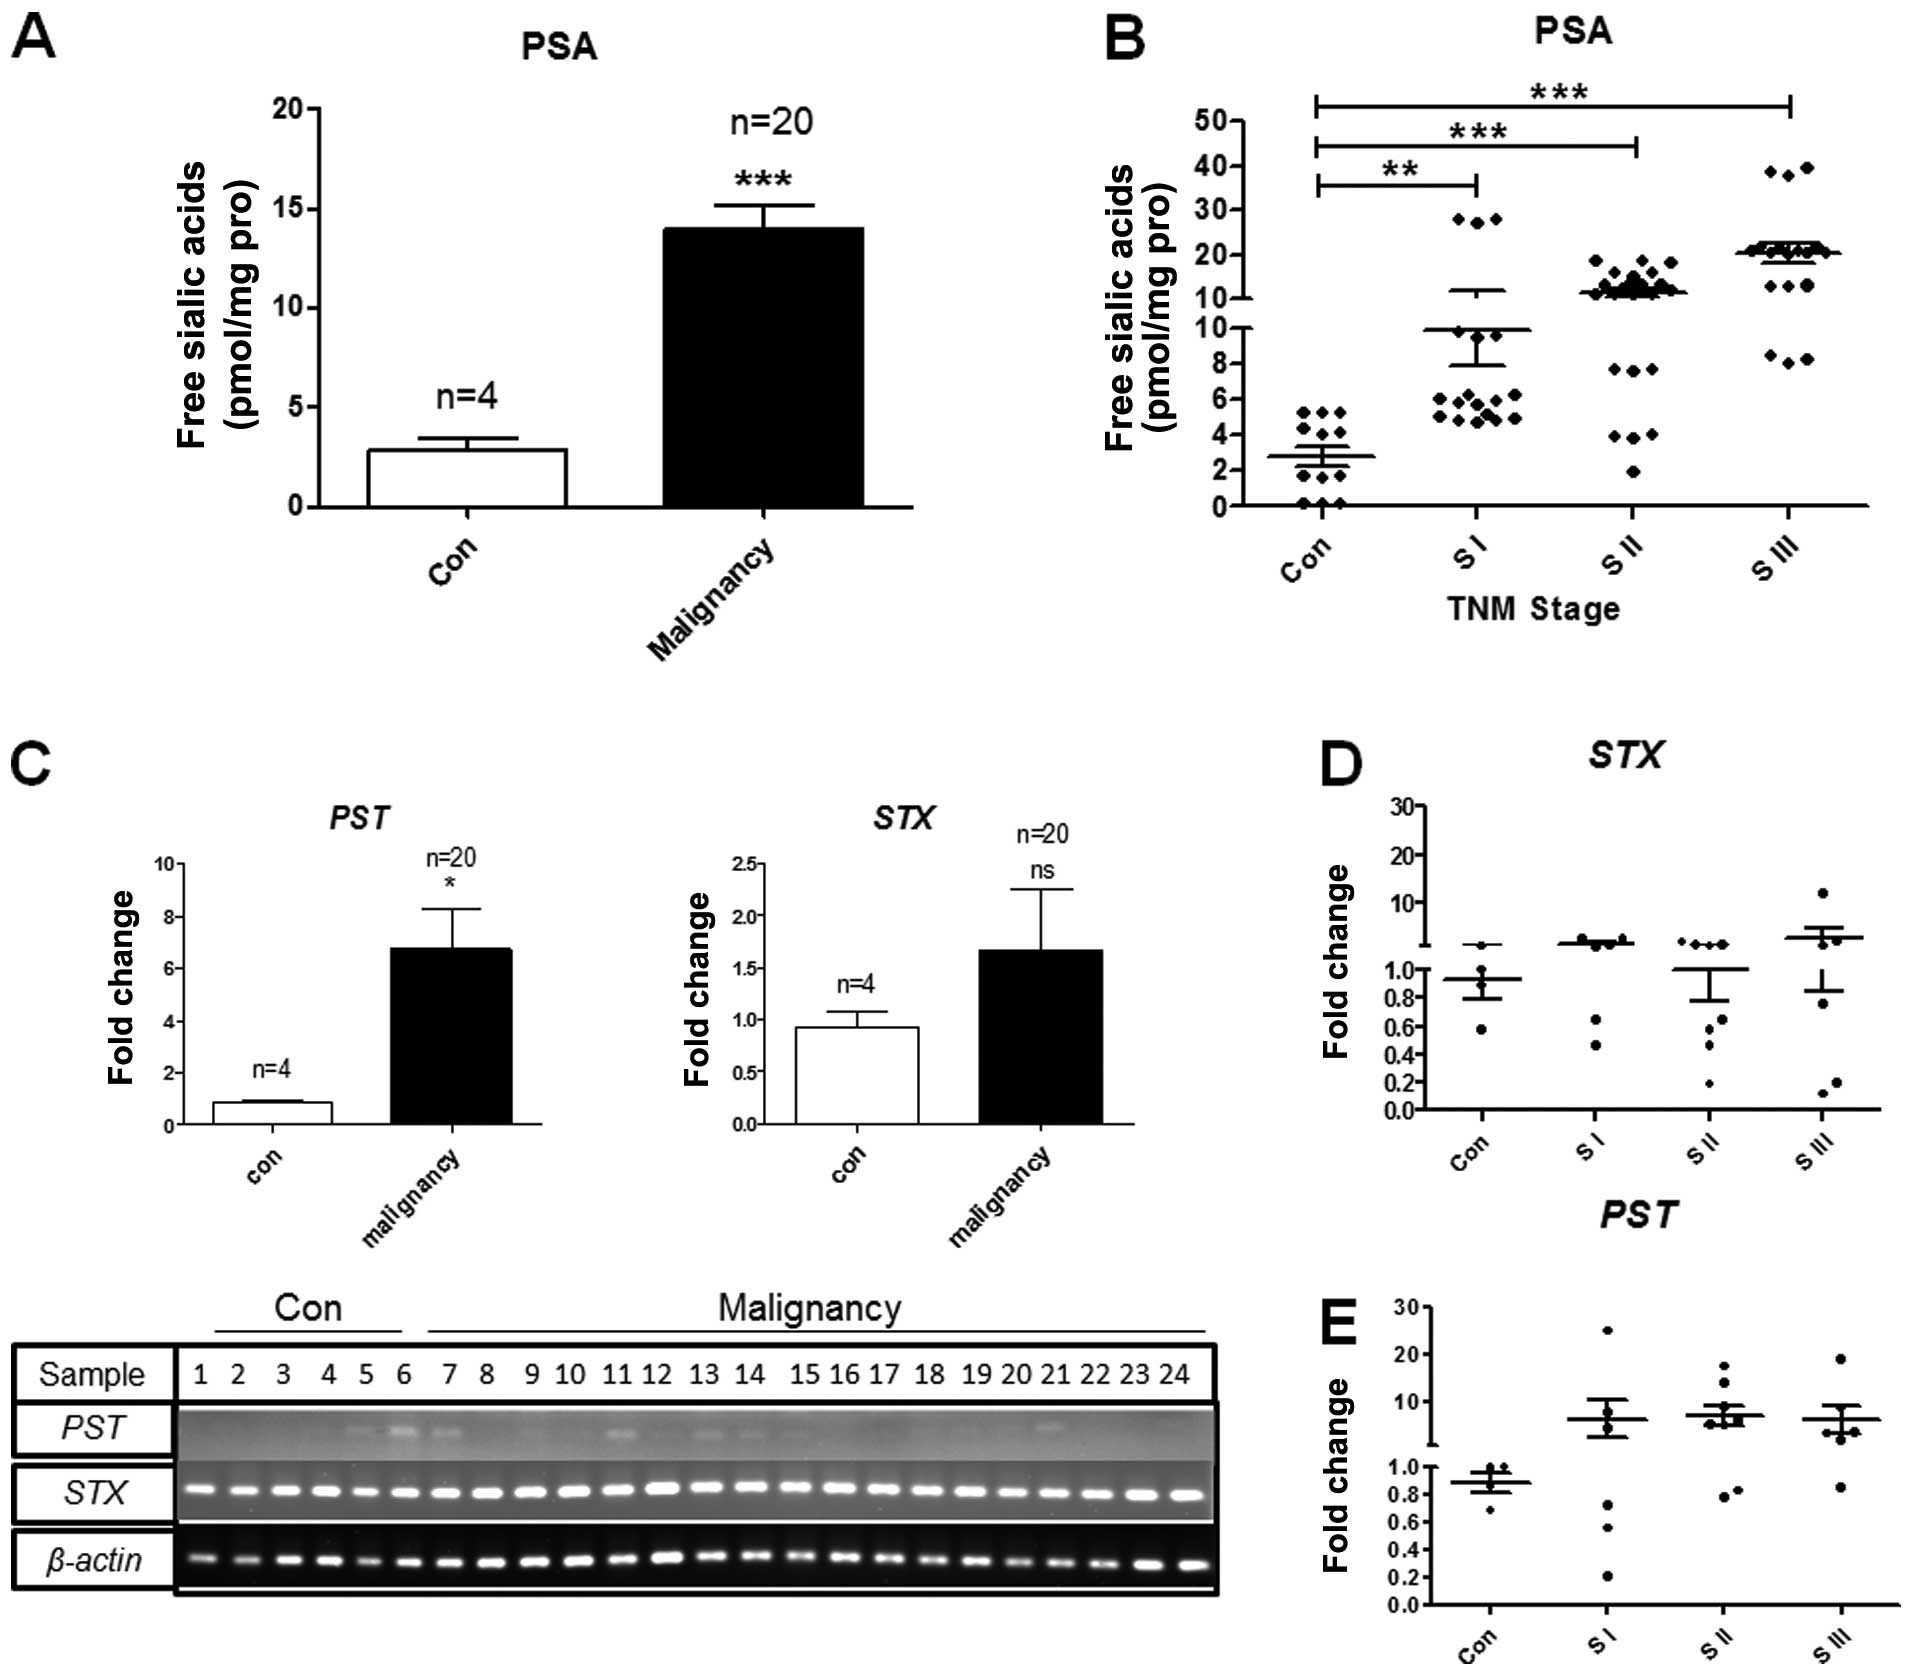 Enhanced Expression Of Polysialic Acid Correlates With Malignant 1994 Eagle Summit Wiring Diagram Figure 7 Psa And Polysialyltransferase In Human Breast Cancer Bc Tissues A B Patients